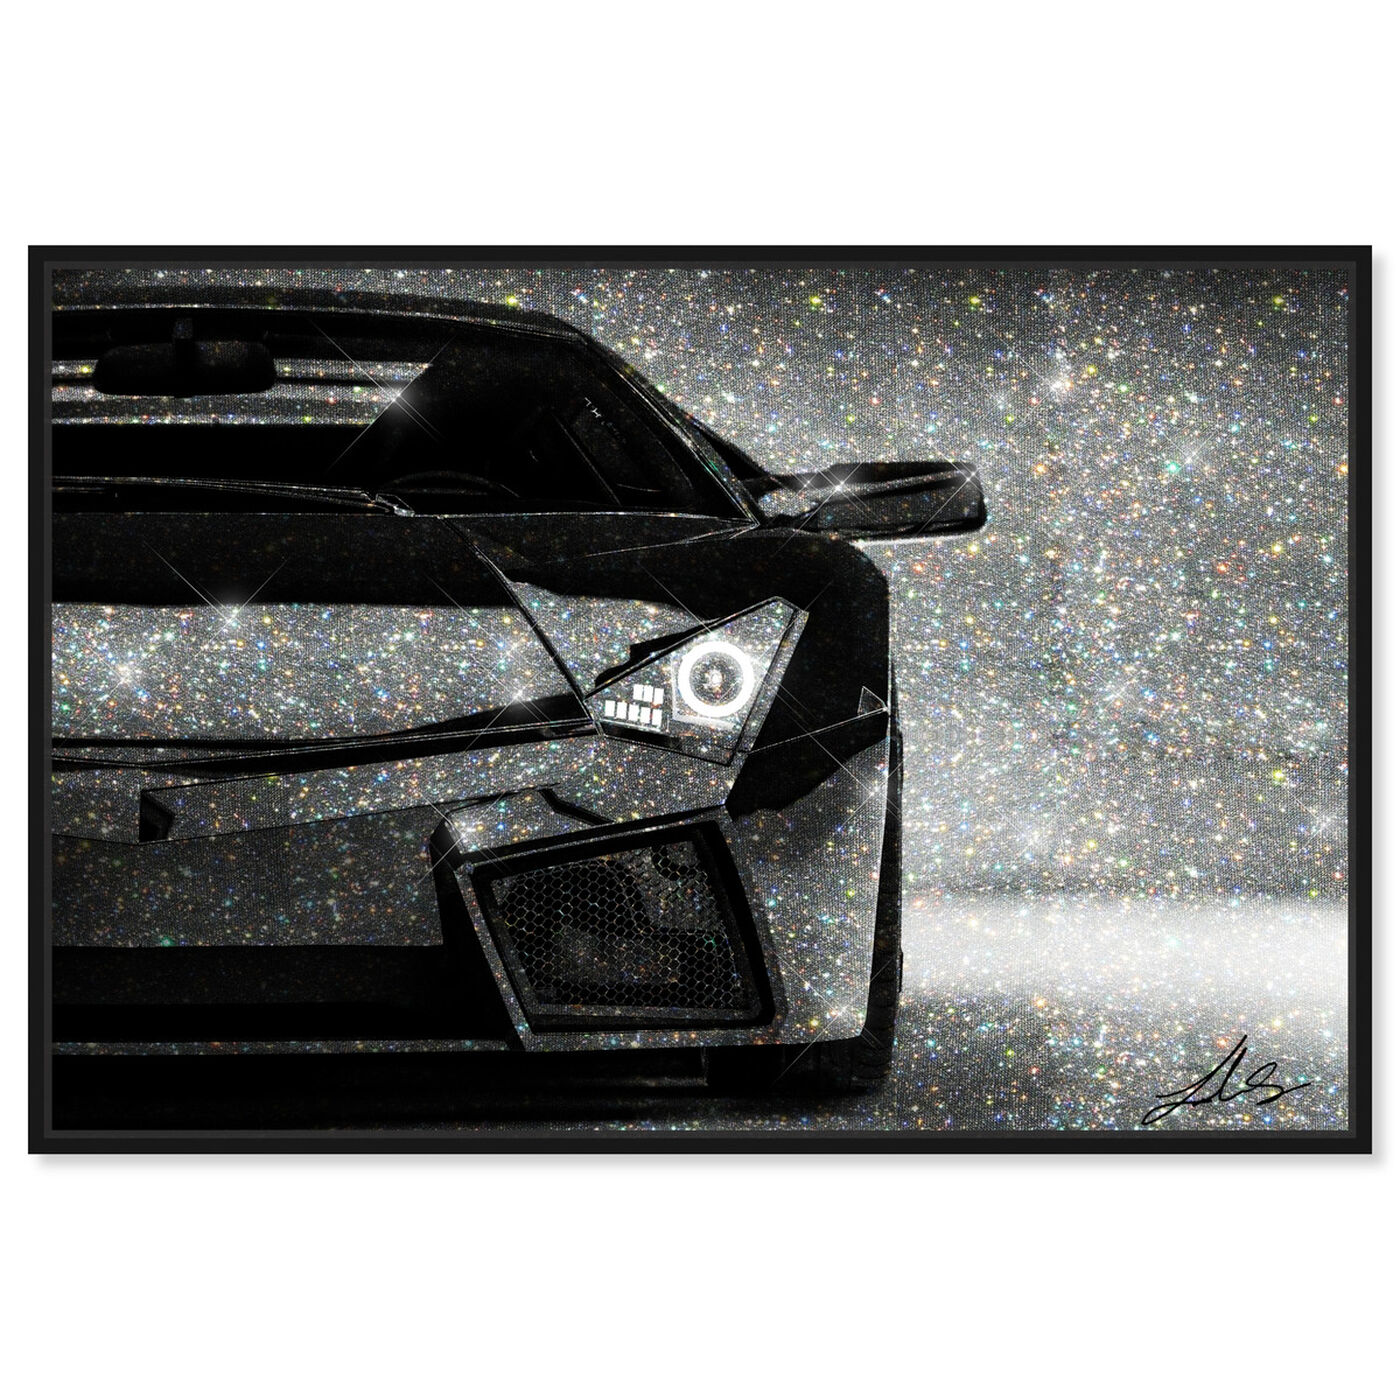 Front view of Love Doesn't Drive a Lambo featuring transportation and automobiles art.